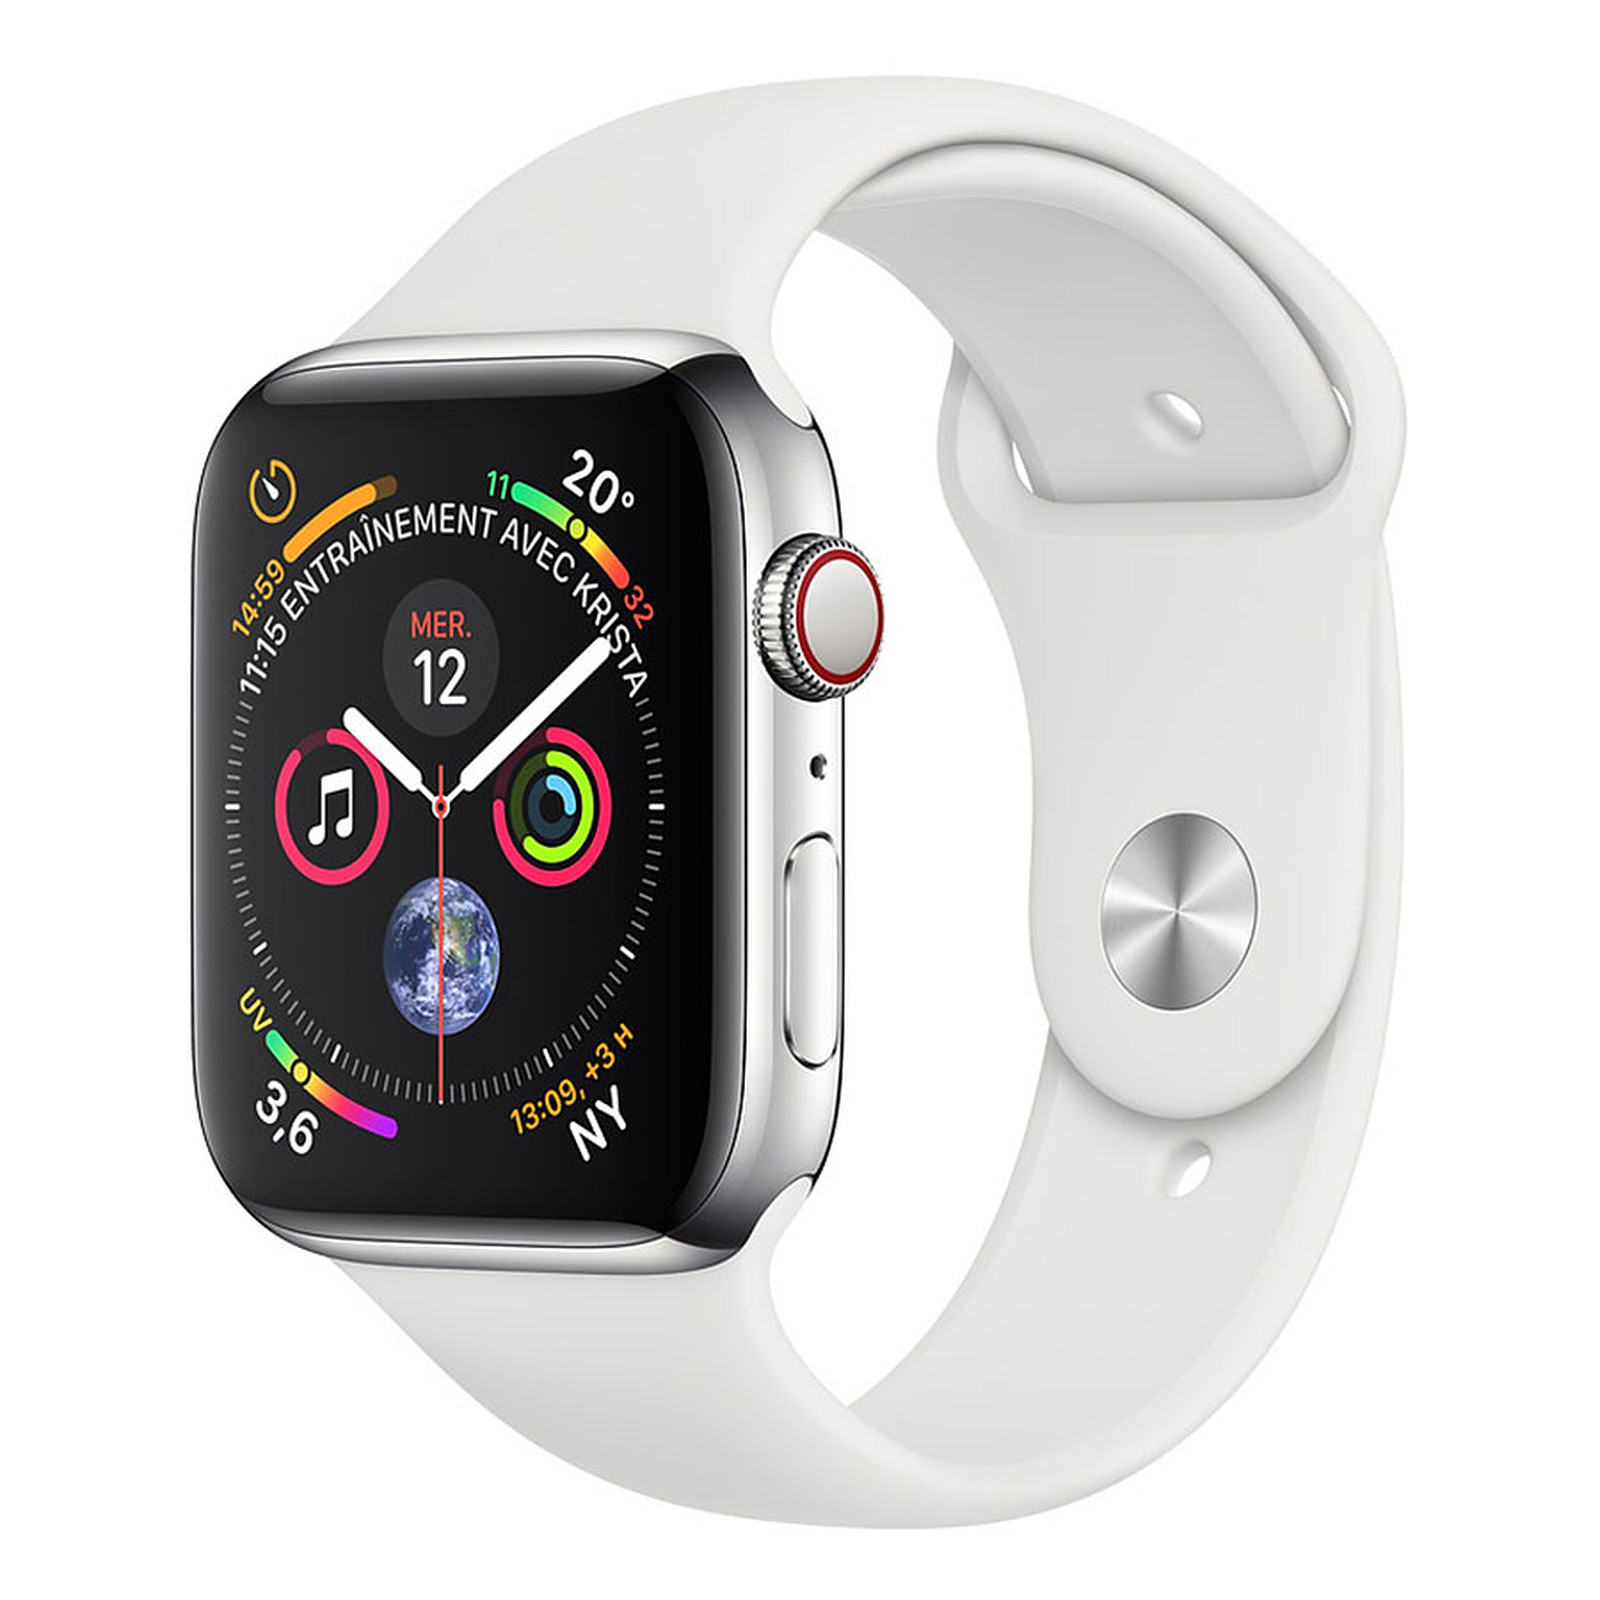 disponibilidad en el reino unido venta caliente online nuevo estilo de Apple Watch Series 4 GPS + Celular Steel Sport Blanco 44 mm